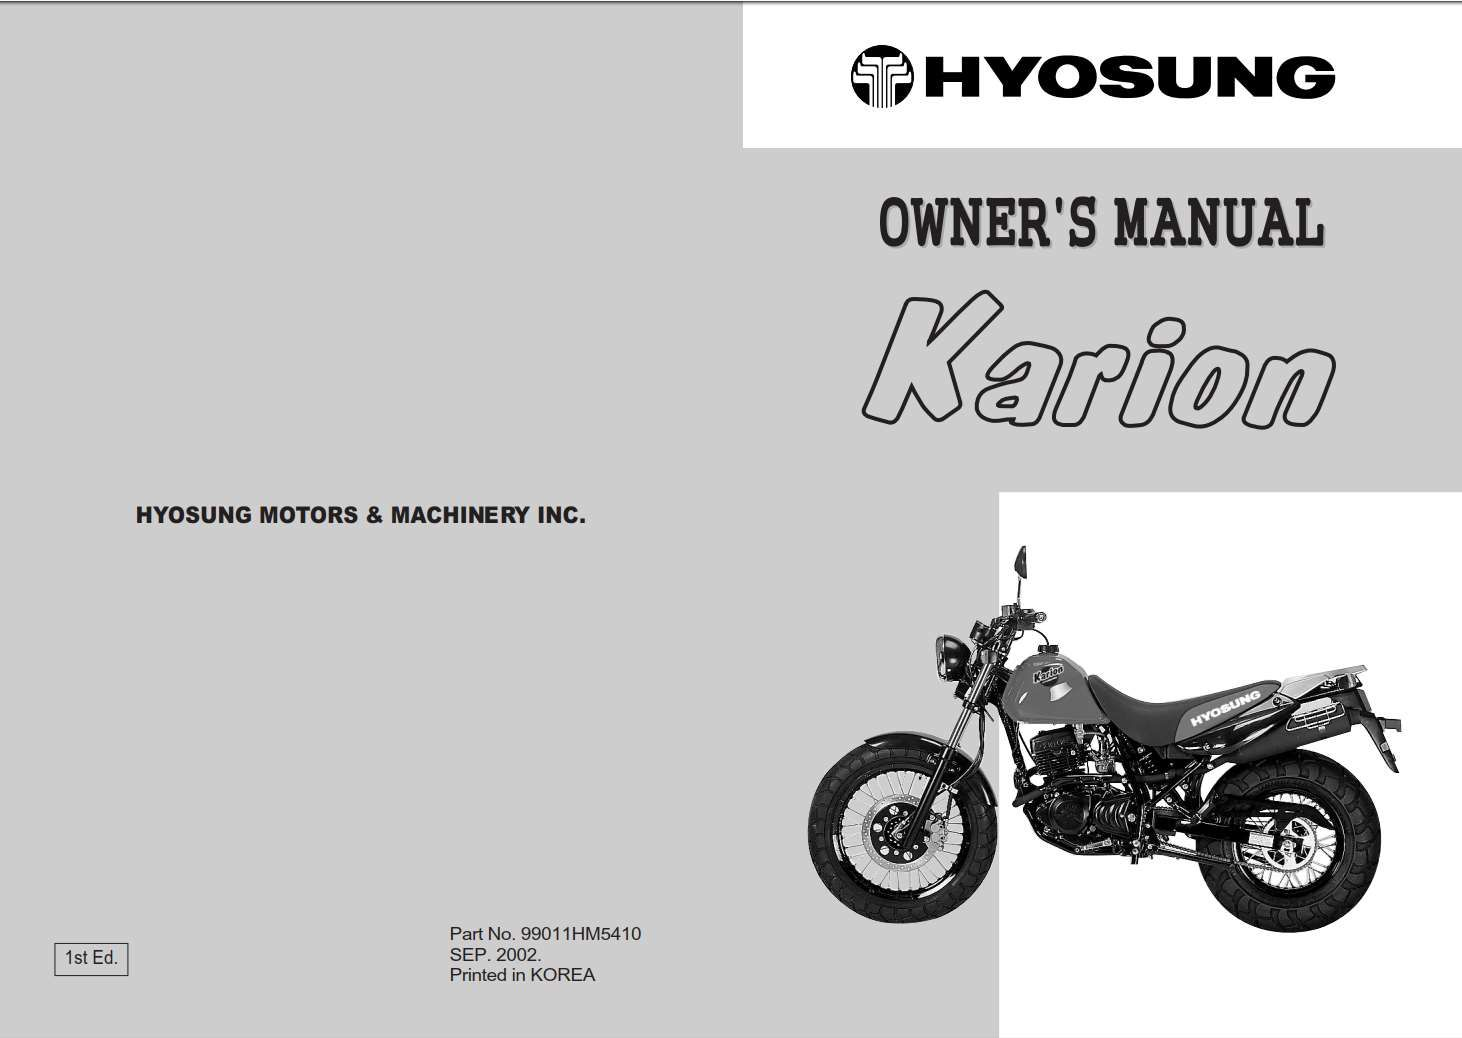 Hyosung Karion 2002 Owner S Manual Has Been Published On Procarmanuals Com Https Procarmanuals Com Hyosung Karion 2002 Owners Ma Owners Manuals Manual Owners